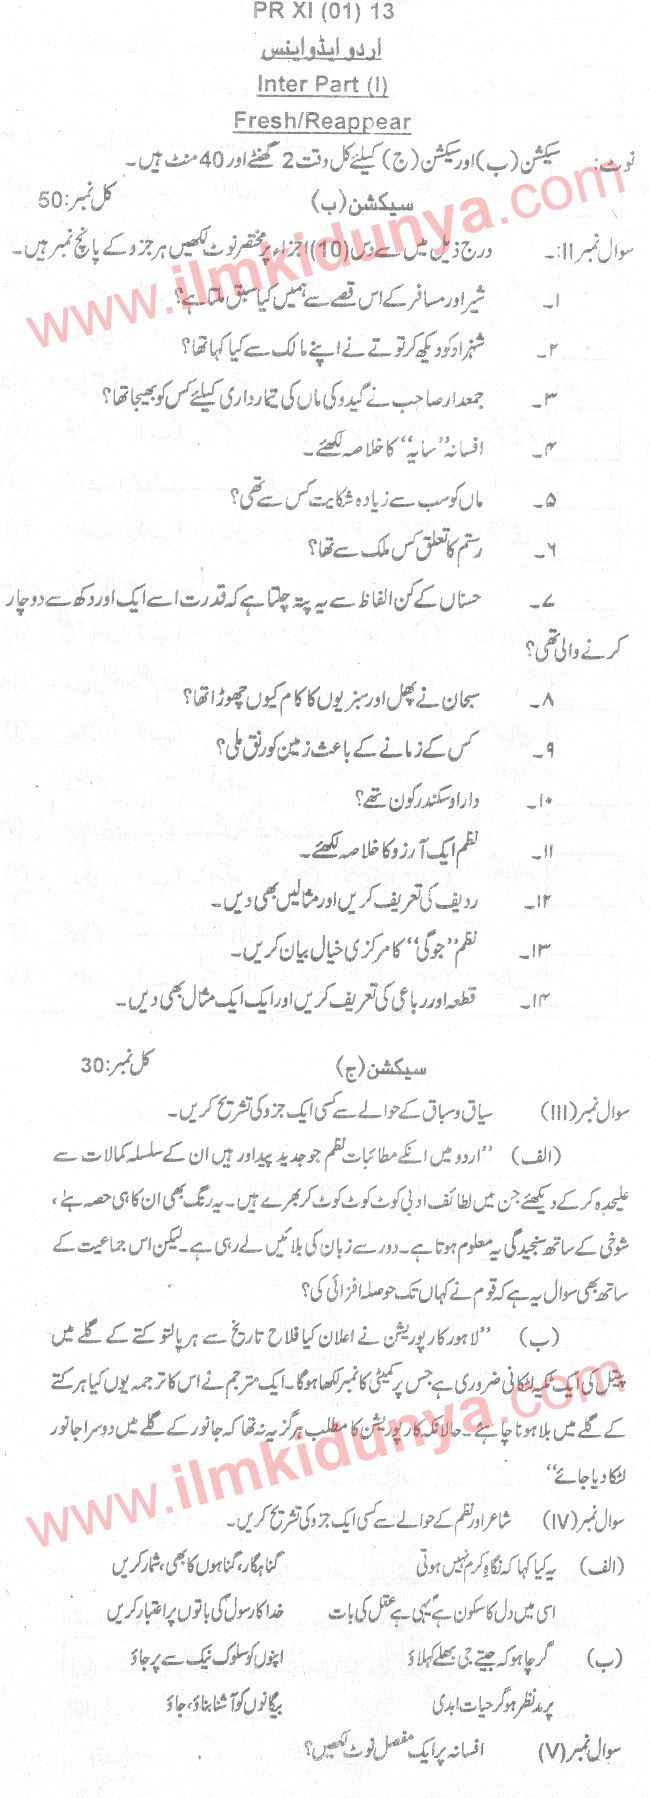 Past Papers 2013 Peshawar Board Inter Part 1 Urdu Advance